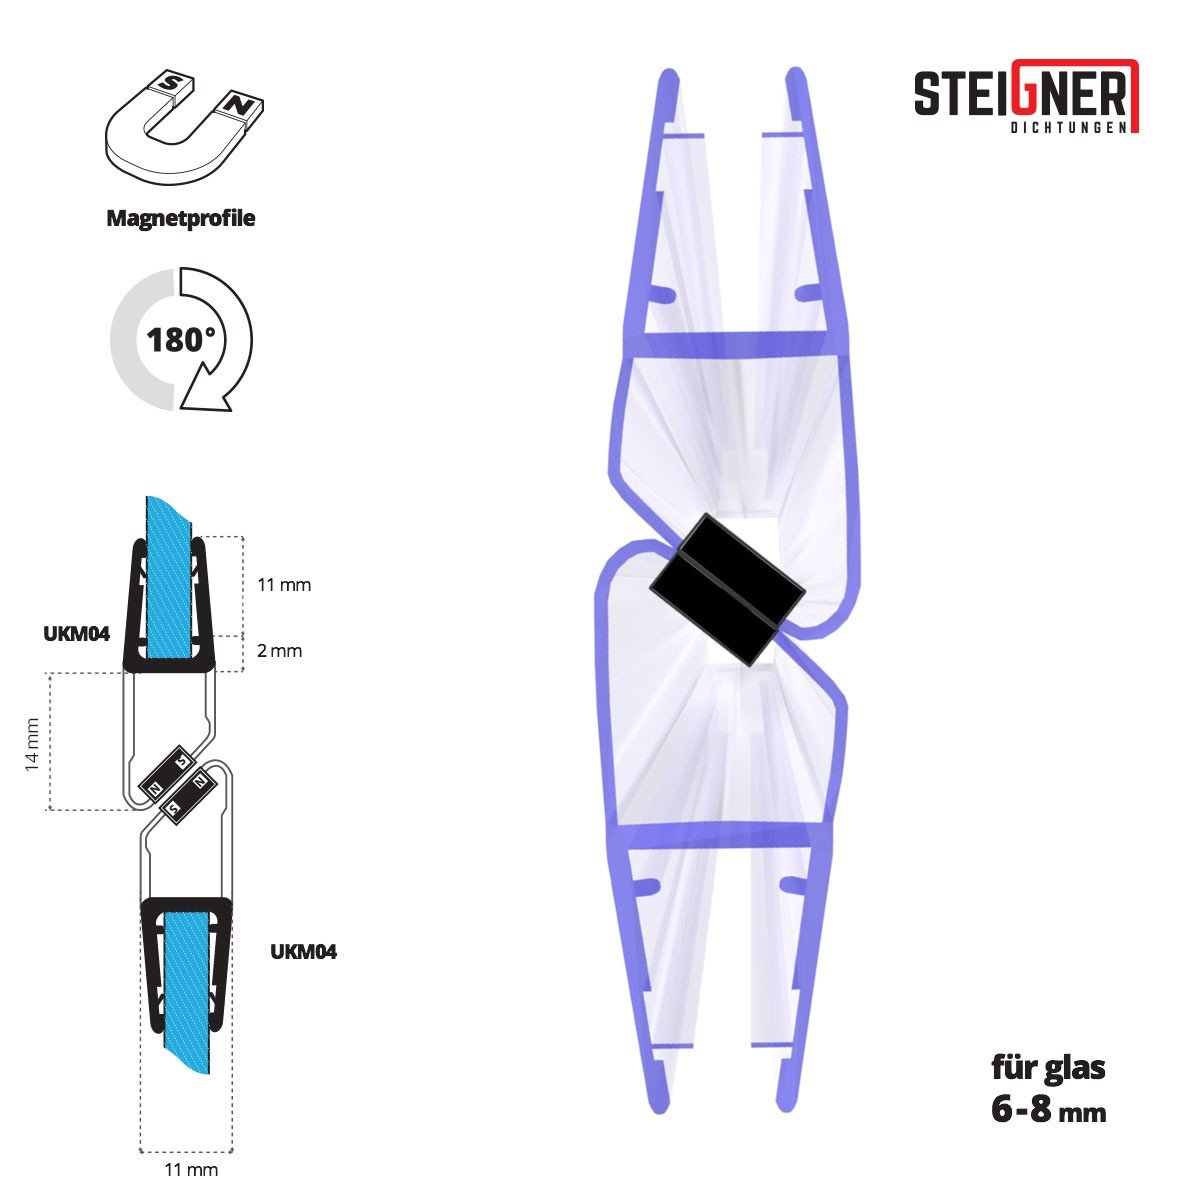 STEIGNER Set Of Magnetic Shower Door Seals 6/7/8 mm UKM04 180° For Glass-To-Glass Fits Protection Against Leakage 2 Pieces 201 cm